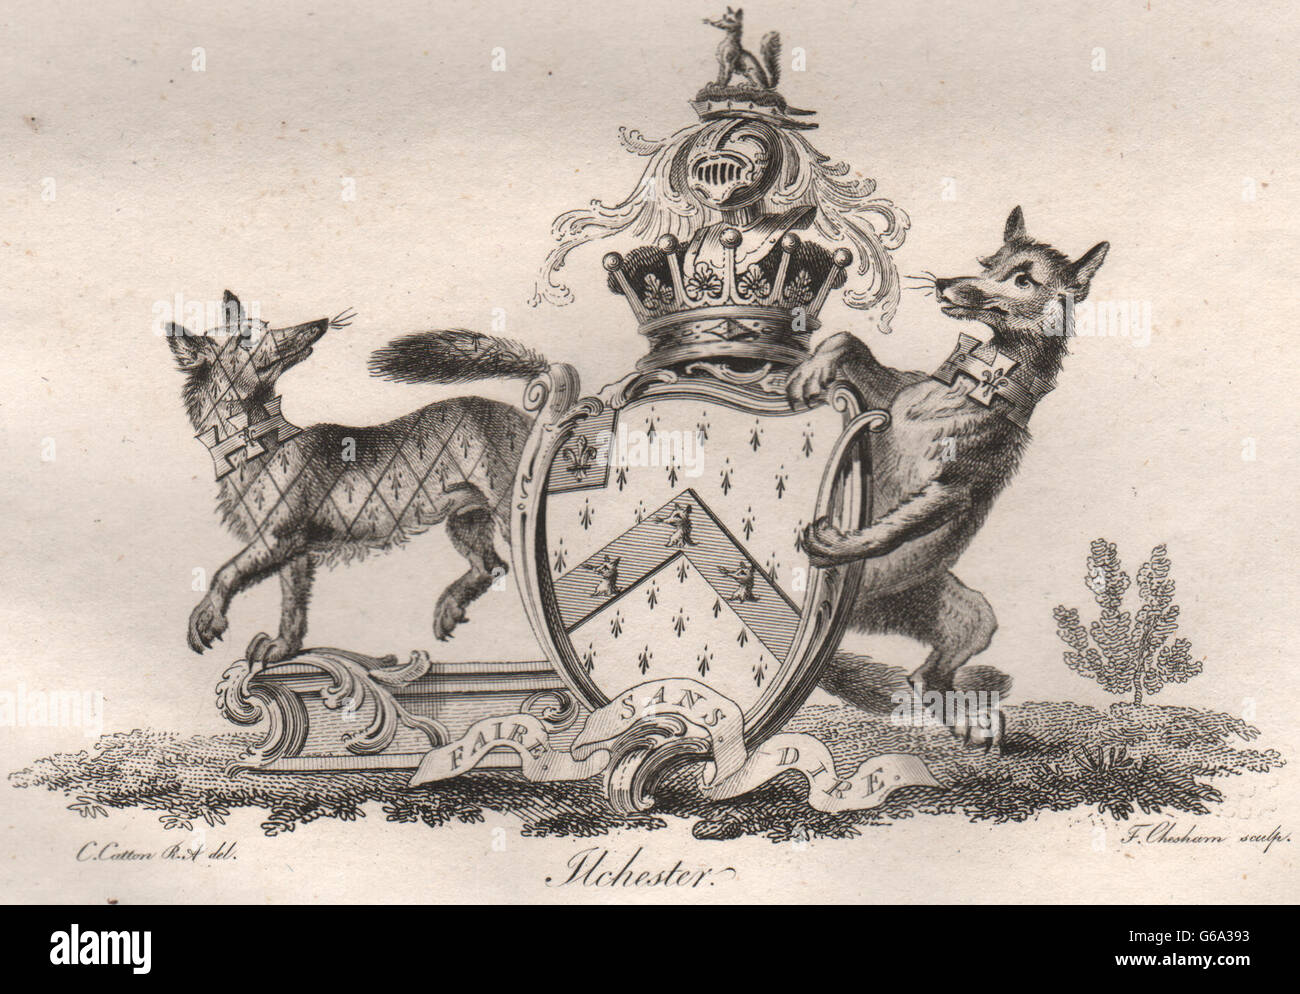 FLCHESTER: Coat of Arms. Heraldry, antique print 1790 - Stock Image